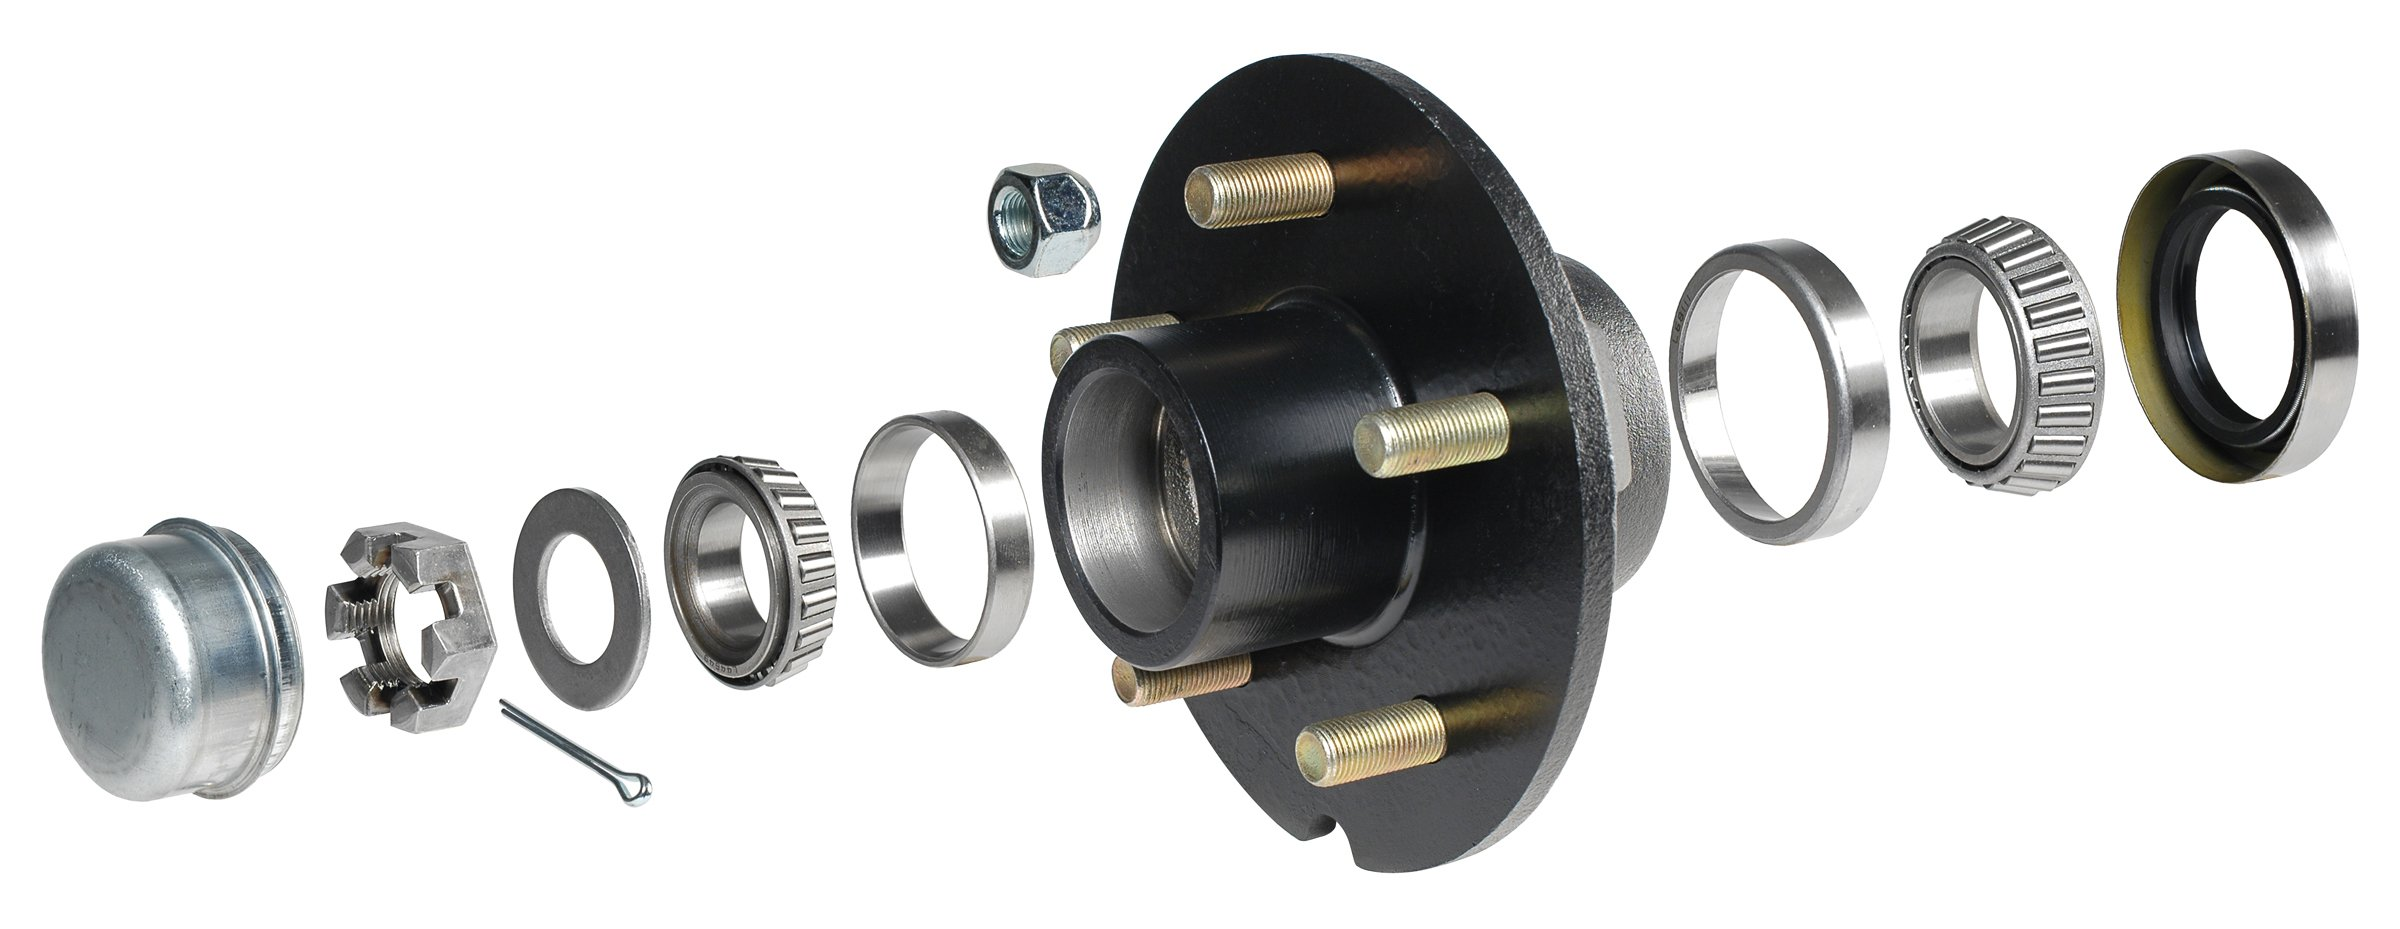 CE Smith Trailer 13511 Trailer Hub Kit with 5 x 4 1/2 Stud, Tapered 1 3/8'' to 1 1/16''- Replacement Parts and Accessories for Your Ski Boat, Fishing Boat or Sailboat Trailer